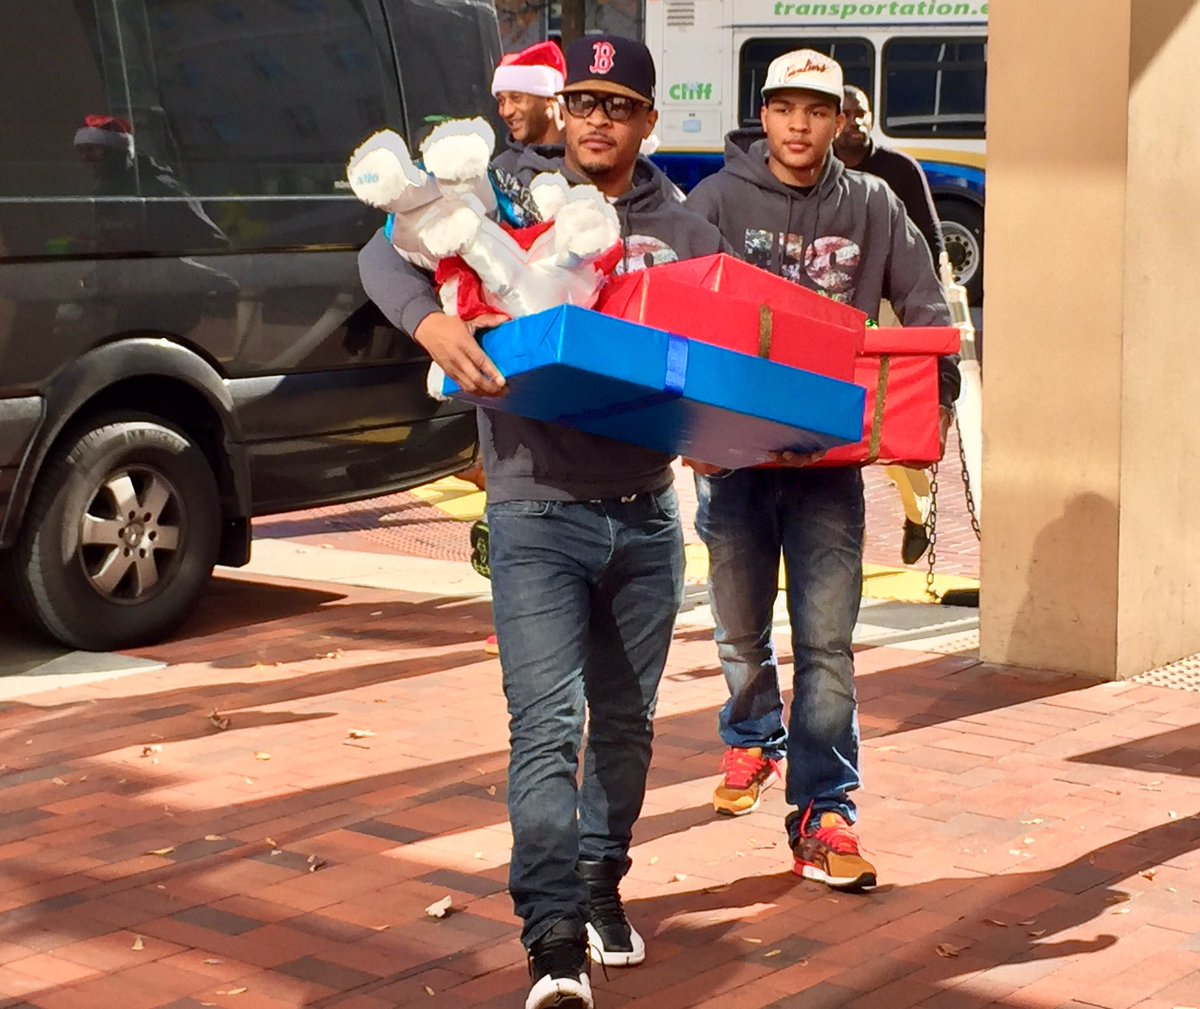 Rapper and actor @Tip brought holiday cheer (and a whole lot of gifts!) to our kids. https://t.co/ACwPrAT43m